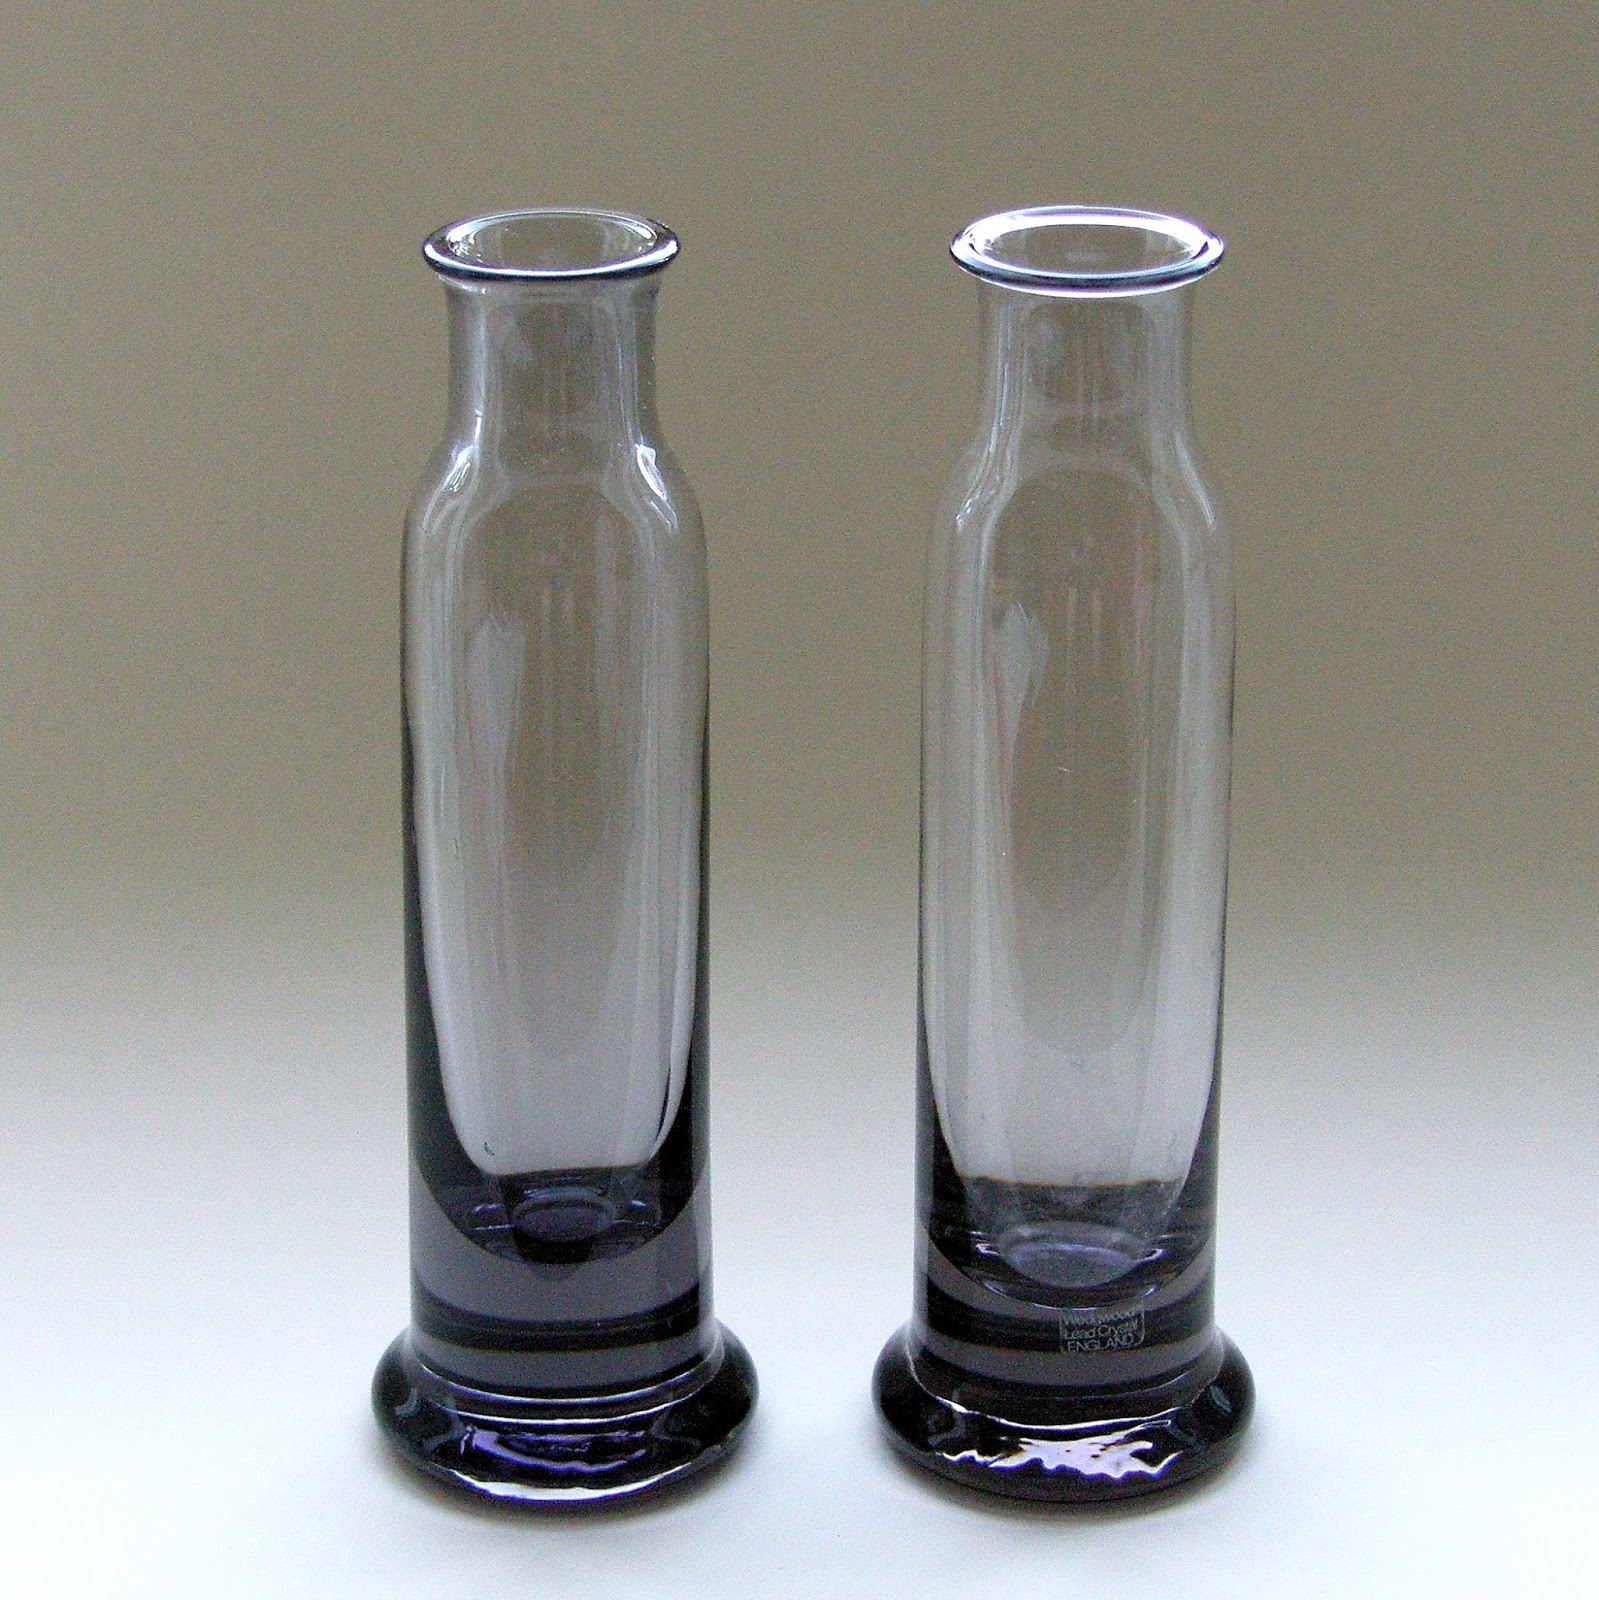 Frank thrower glass designs 1980s wedgwood crystal fjt3 adam single flower vase m m pair reviewsmspy